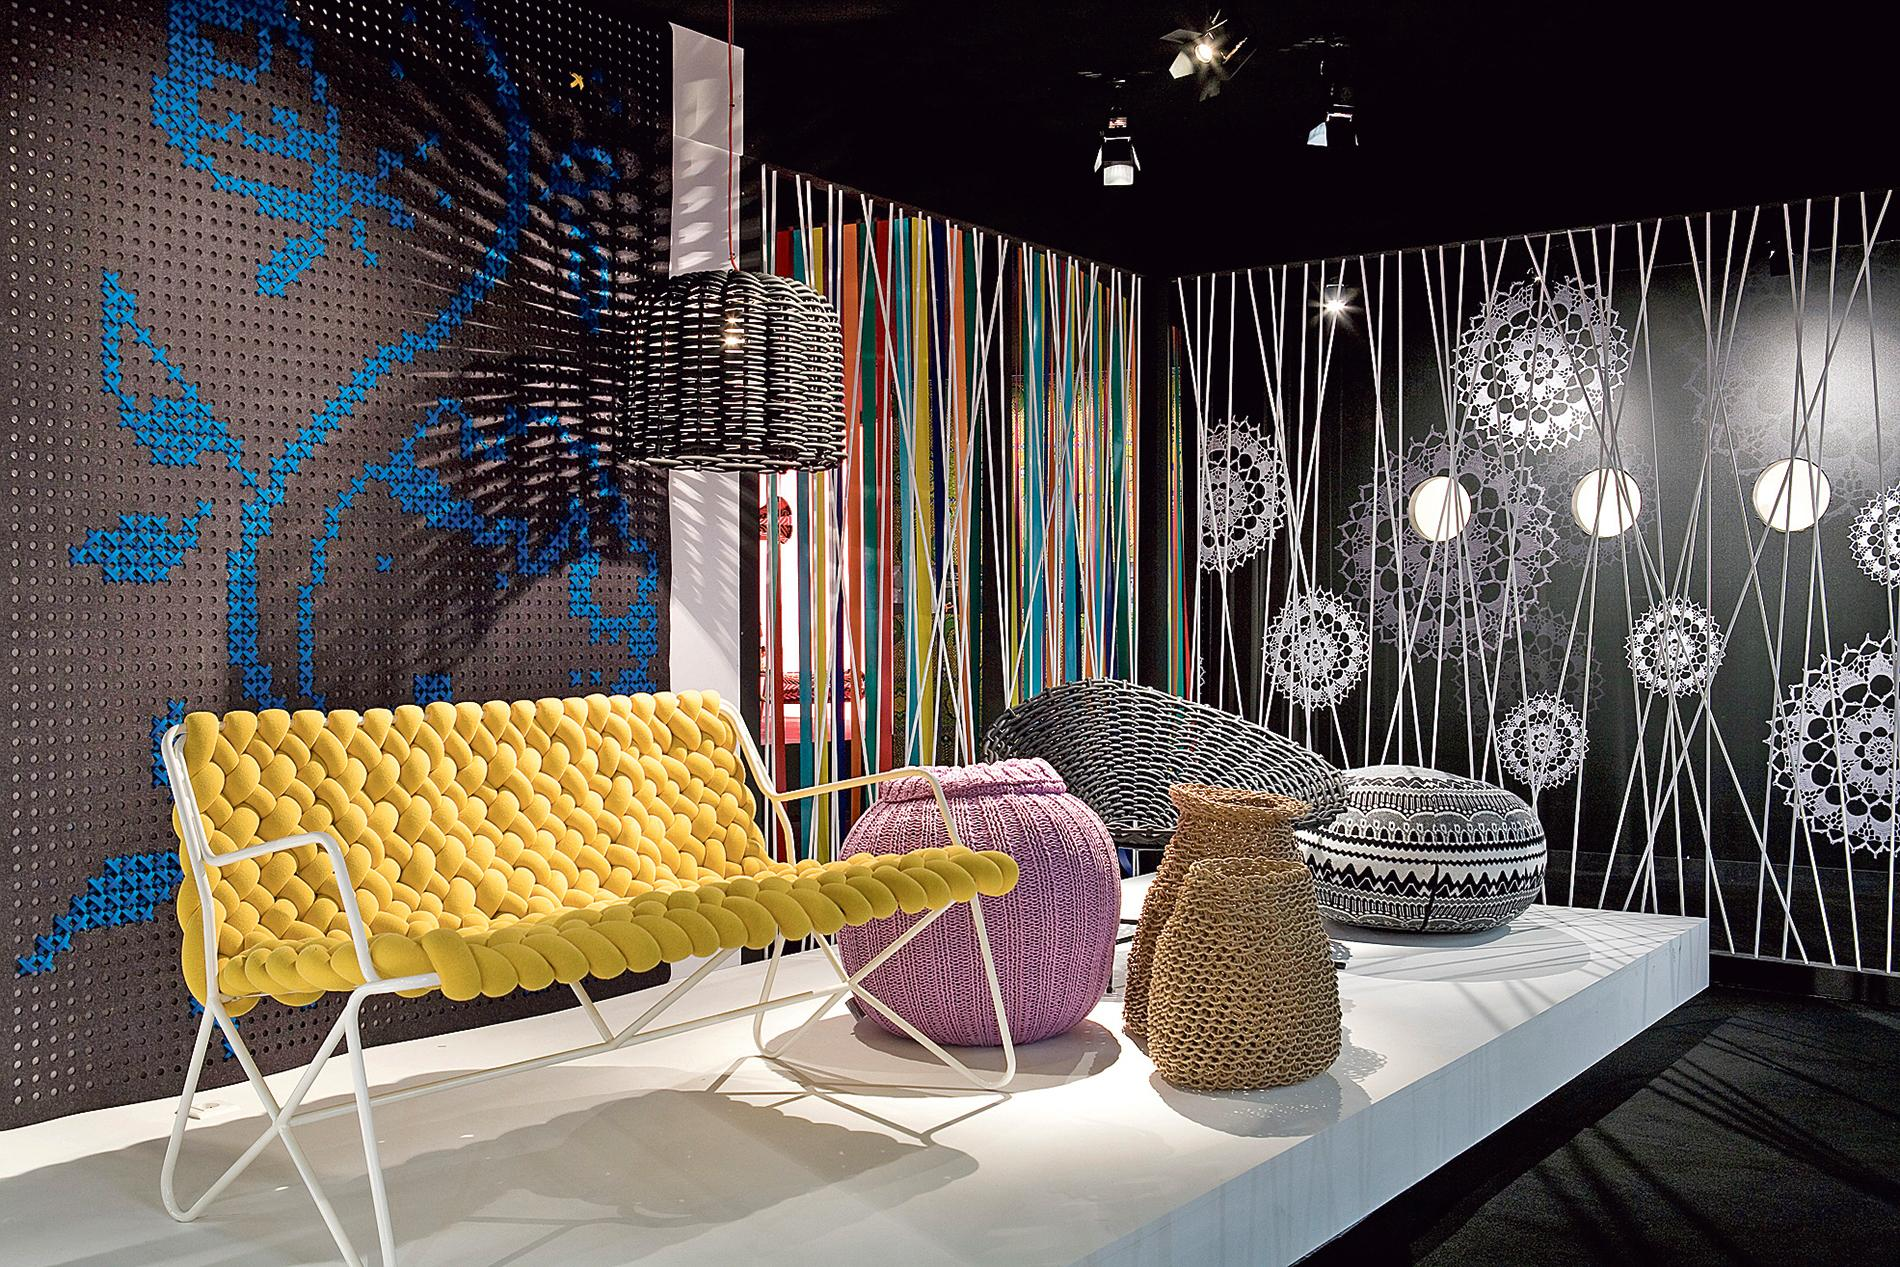 Comment le salon maison objet s 39 est impos sur la sc ne for Salon 2018 france